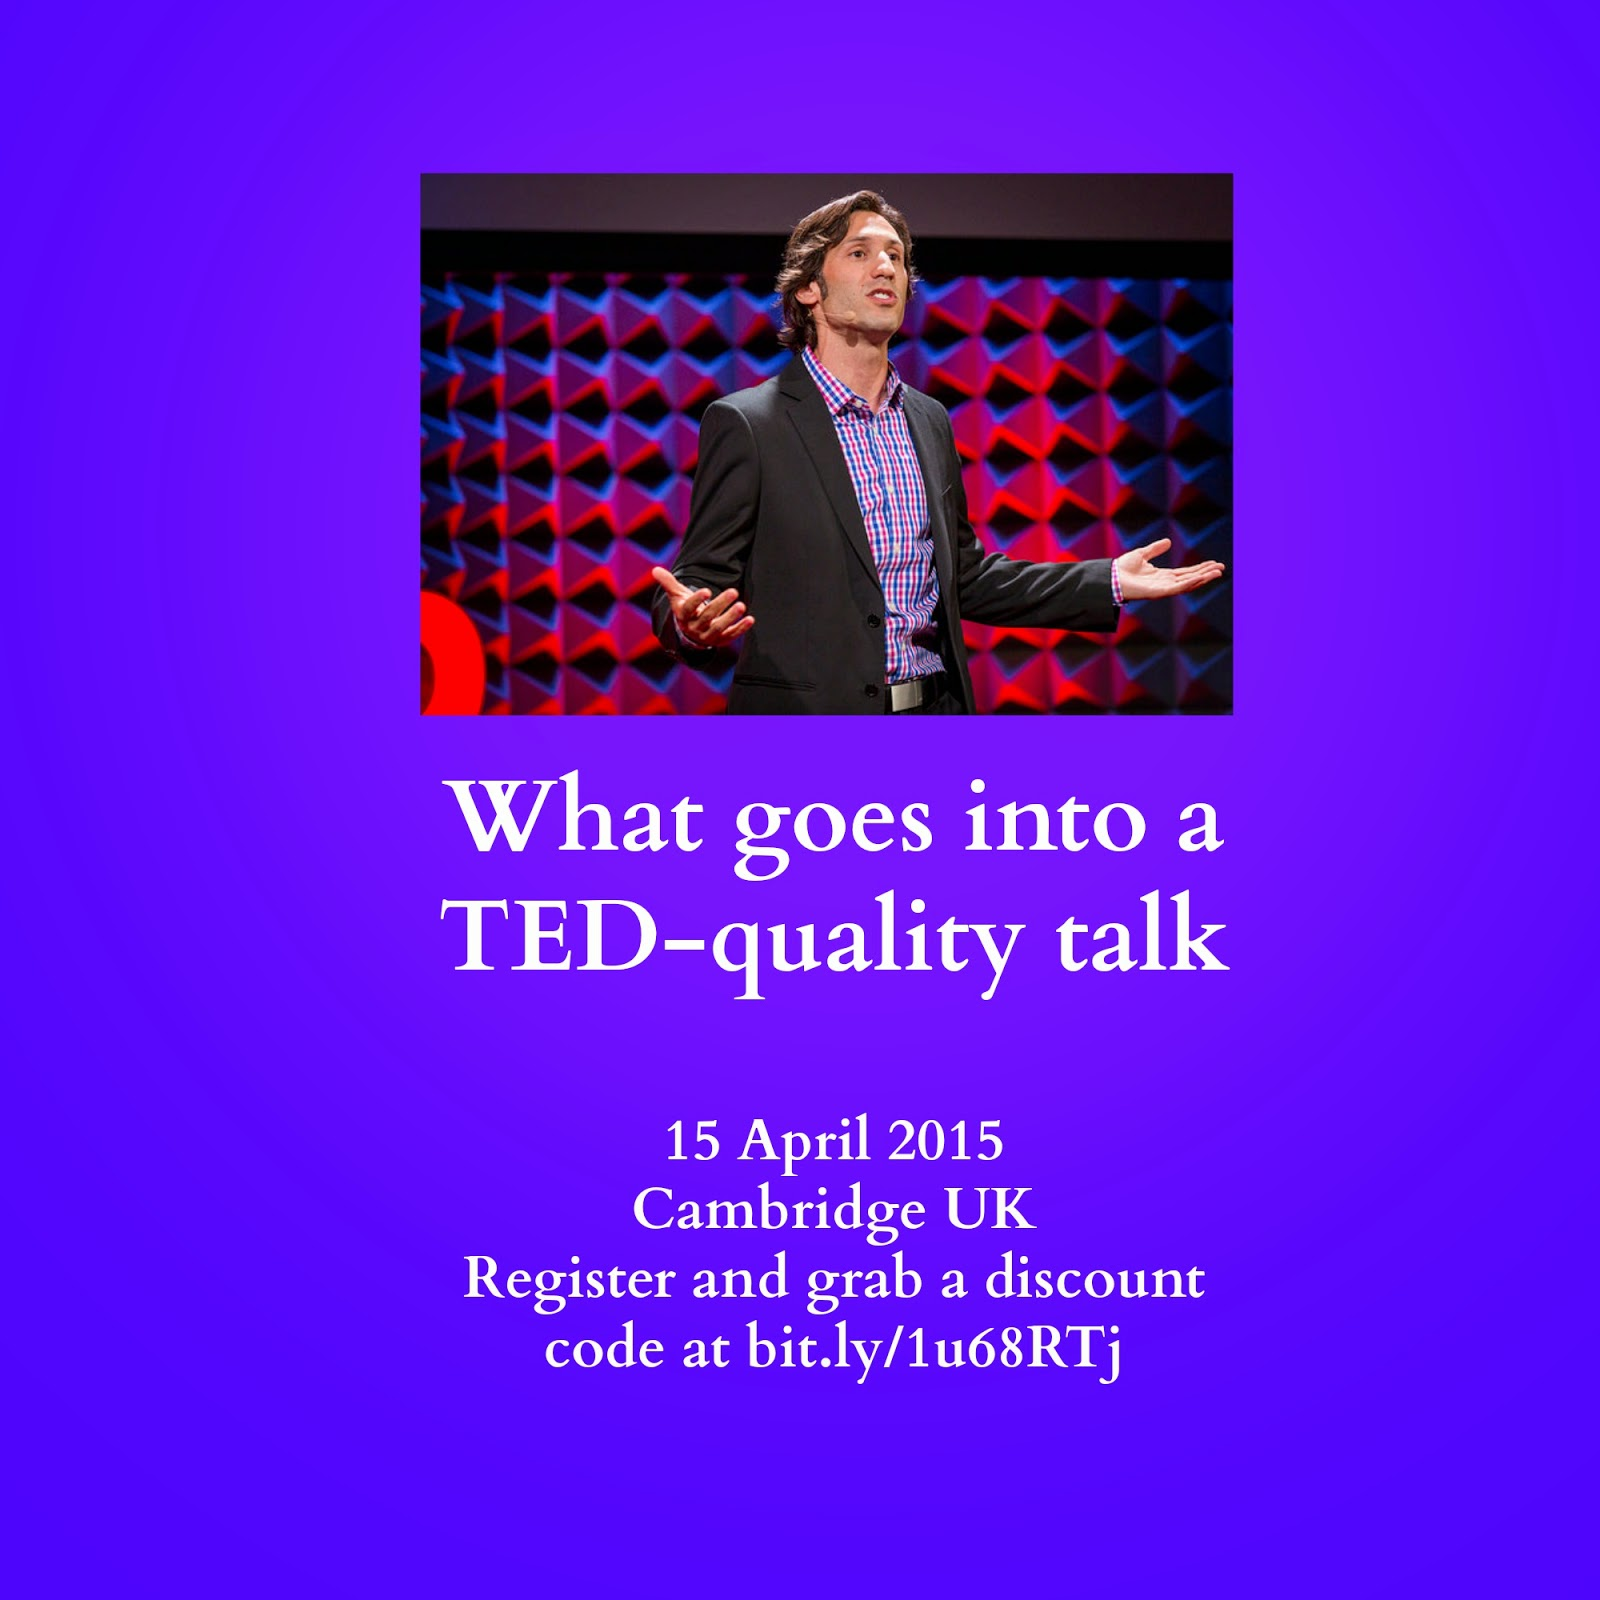 Workshop: What goes into a TED-quality talk, 15 April in Cambridge, UK